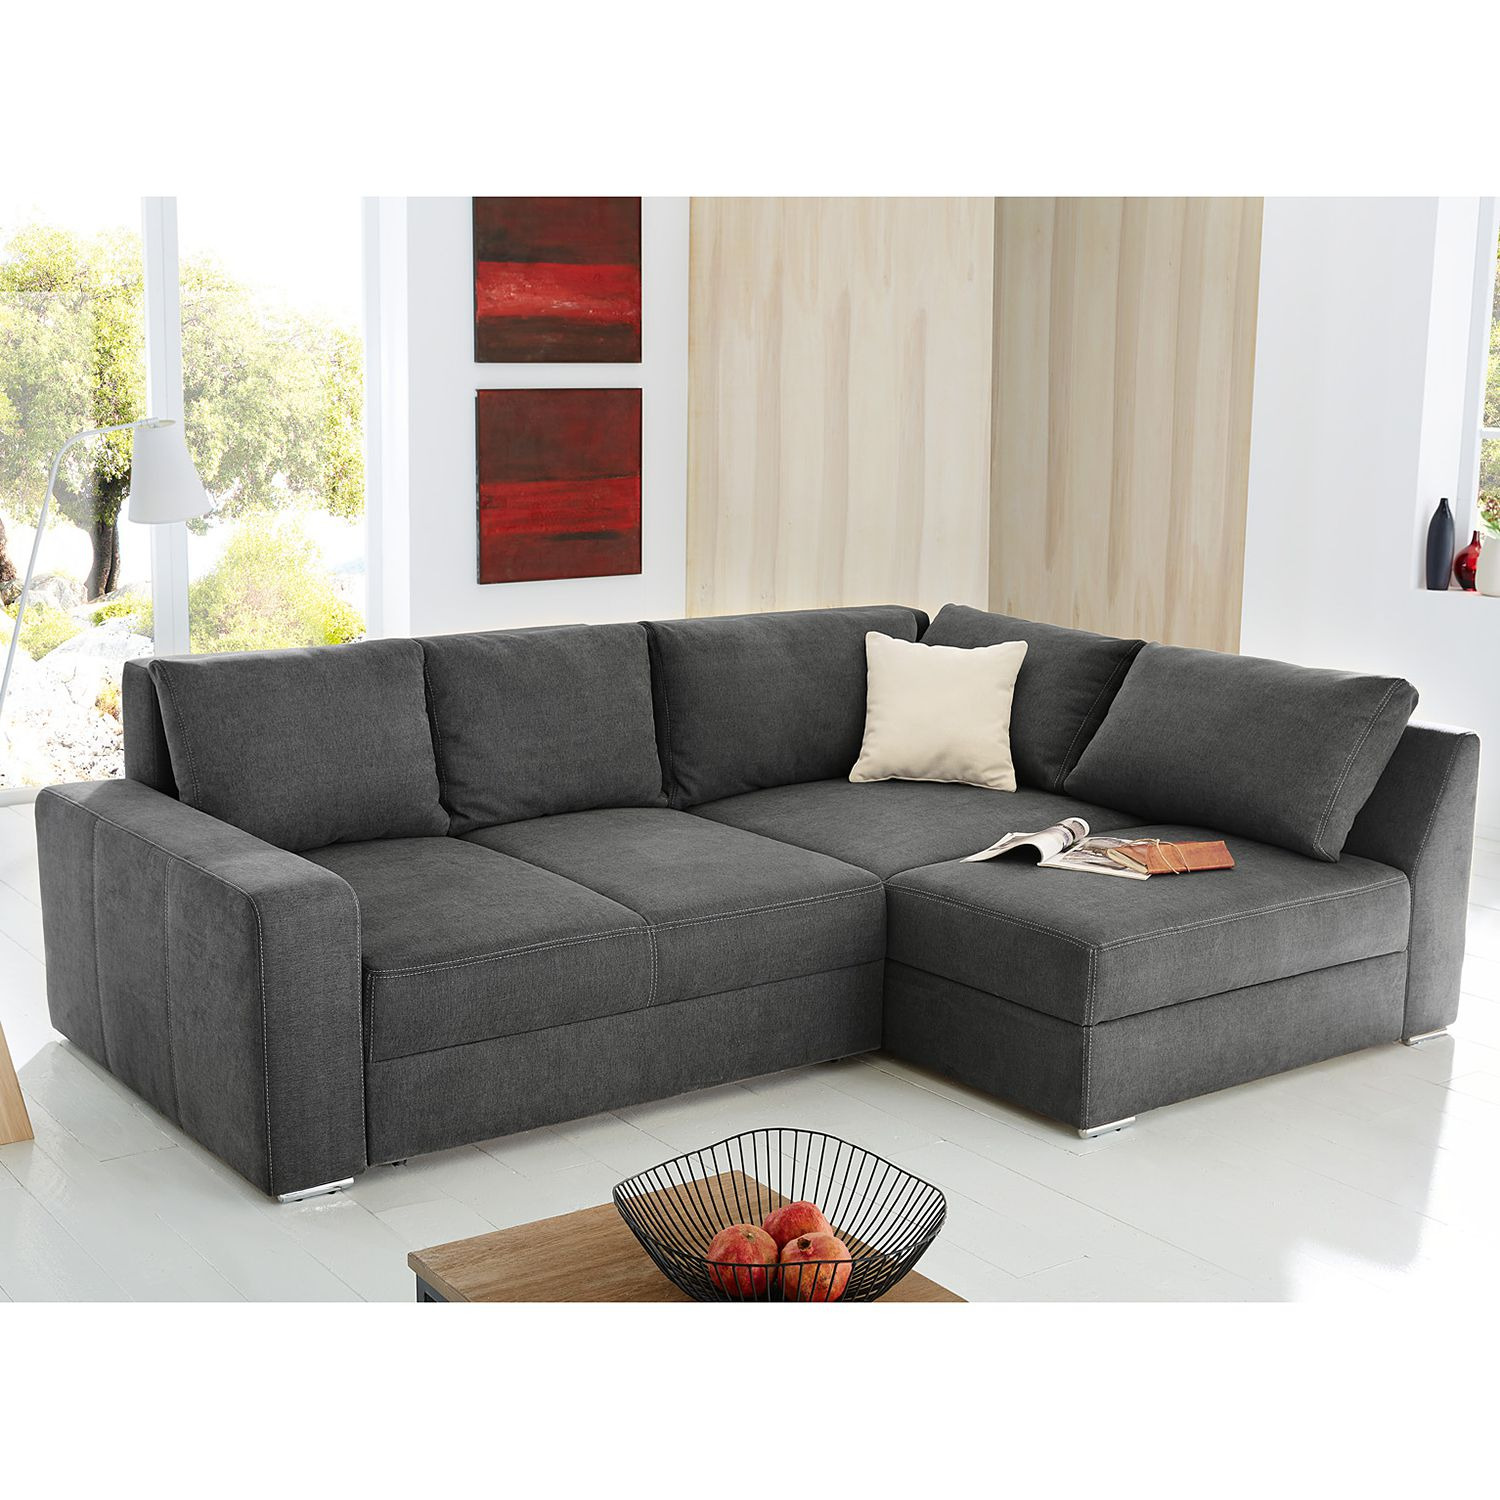 ecksofa grau mit schlaffunktion. Black Bedroom Furniture Sets. Home Design Ideas